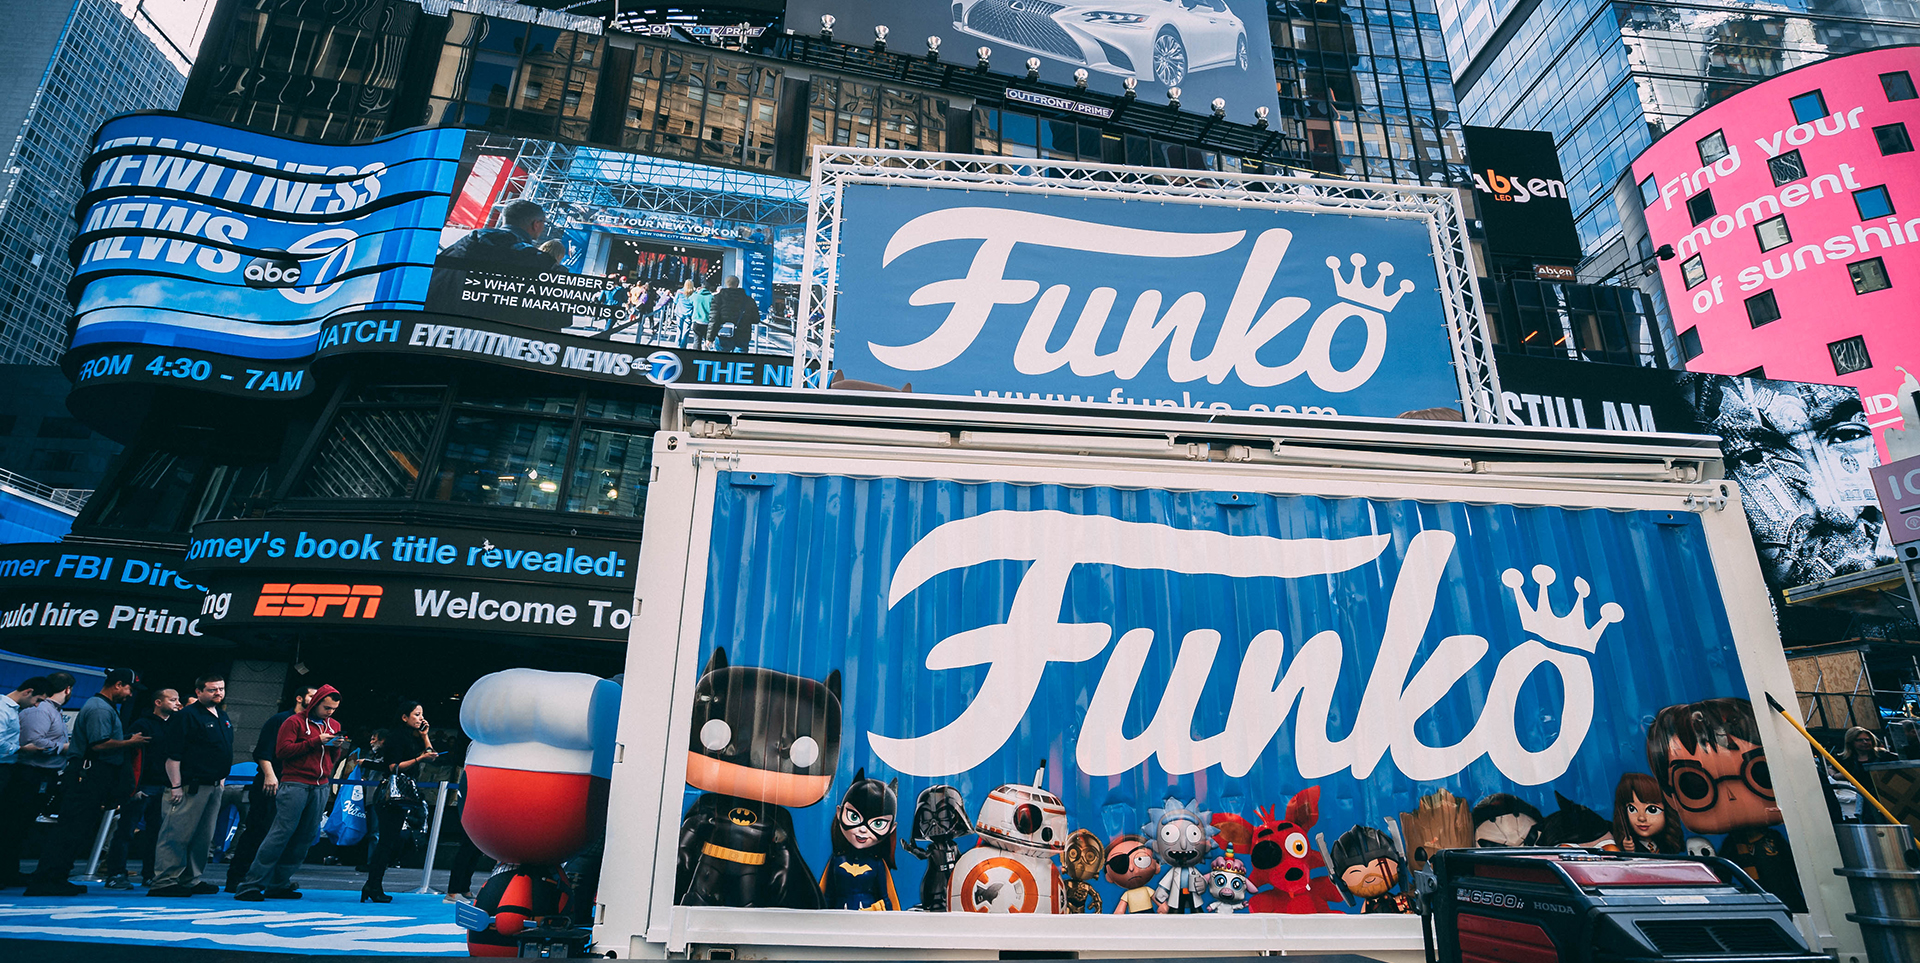 Funko-Steel-Space-Concepts-SS20-1